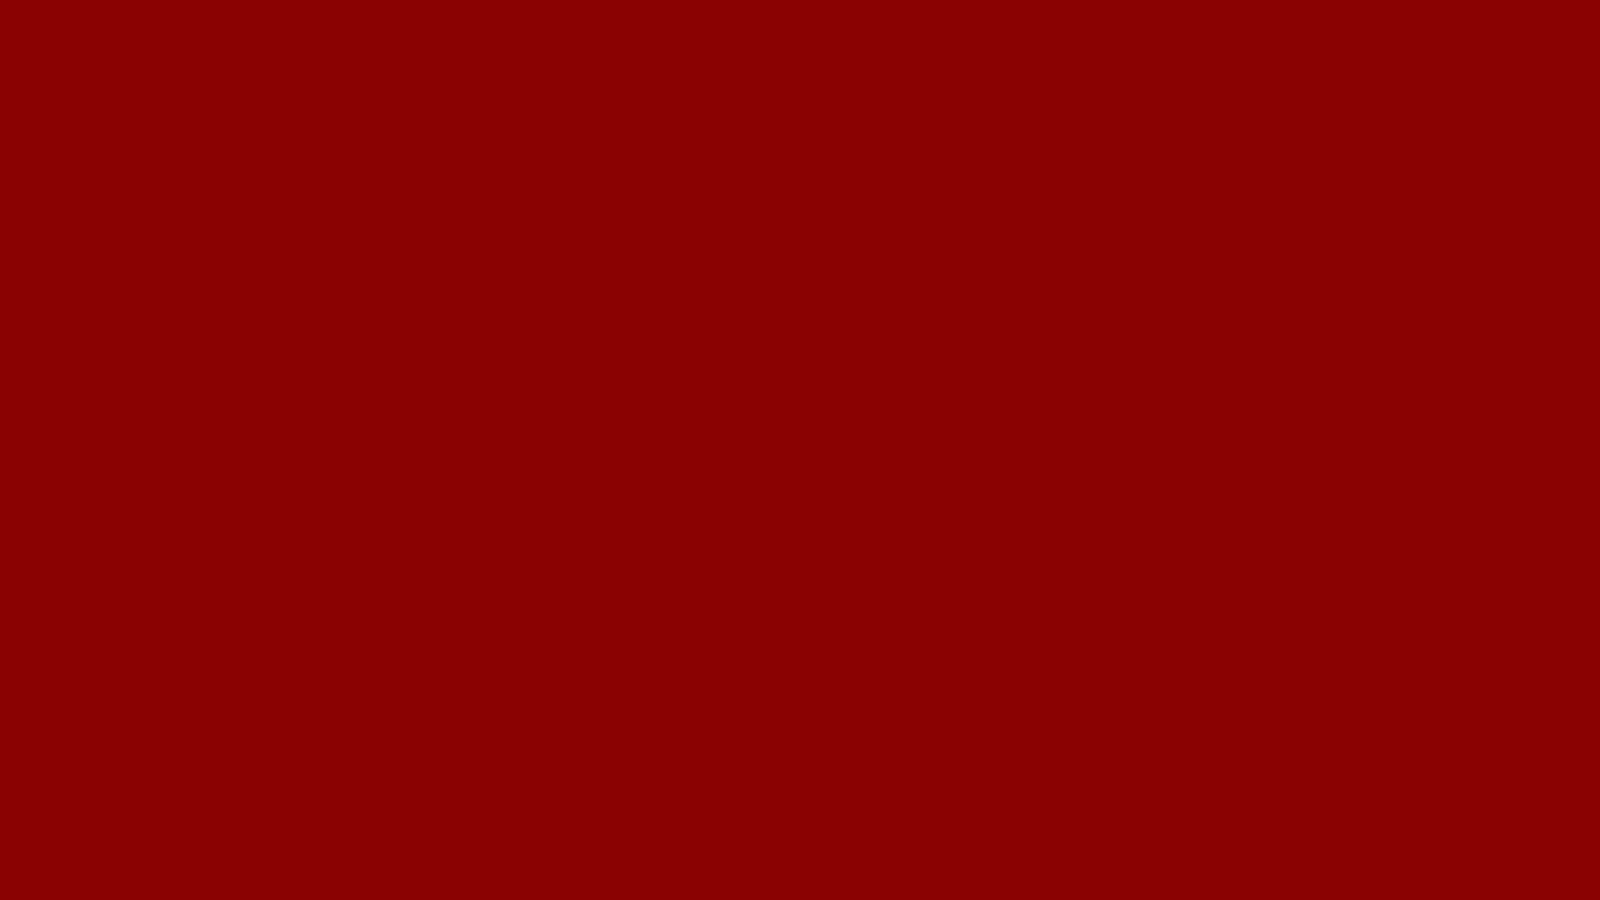 1600x900 Dark Red Solid Color Background